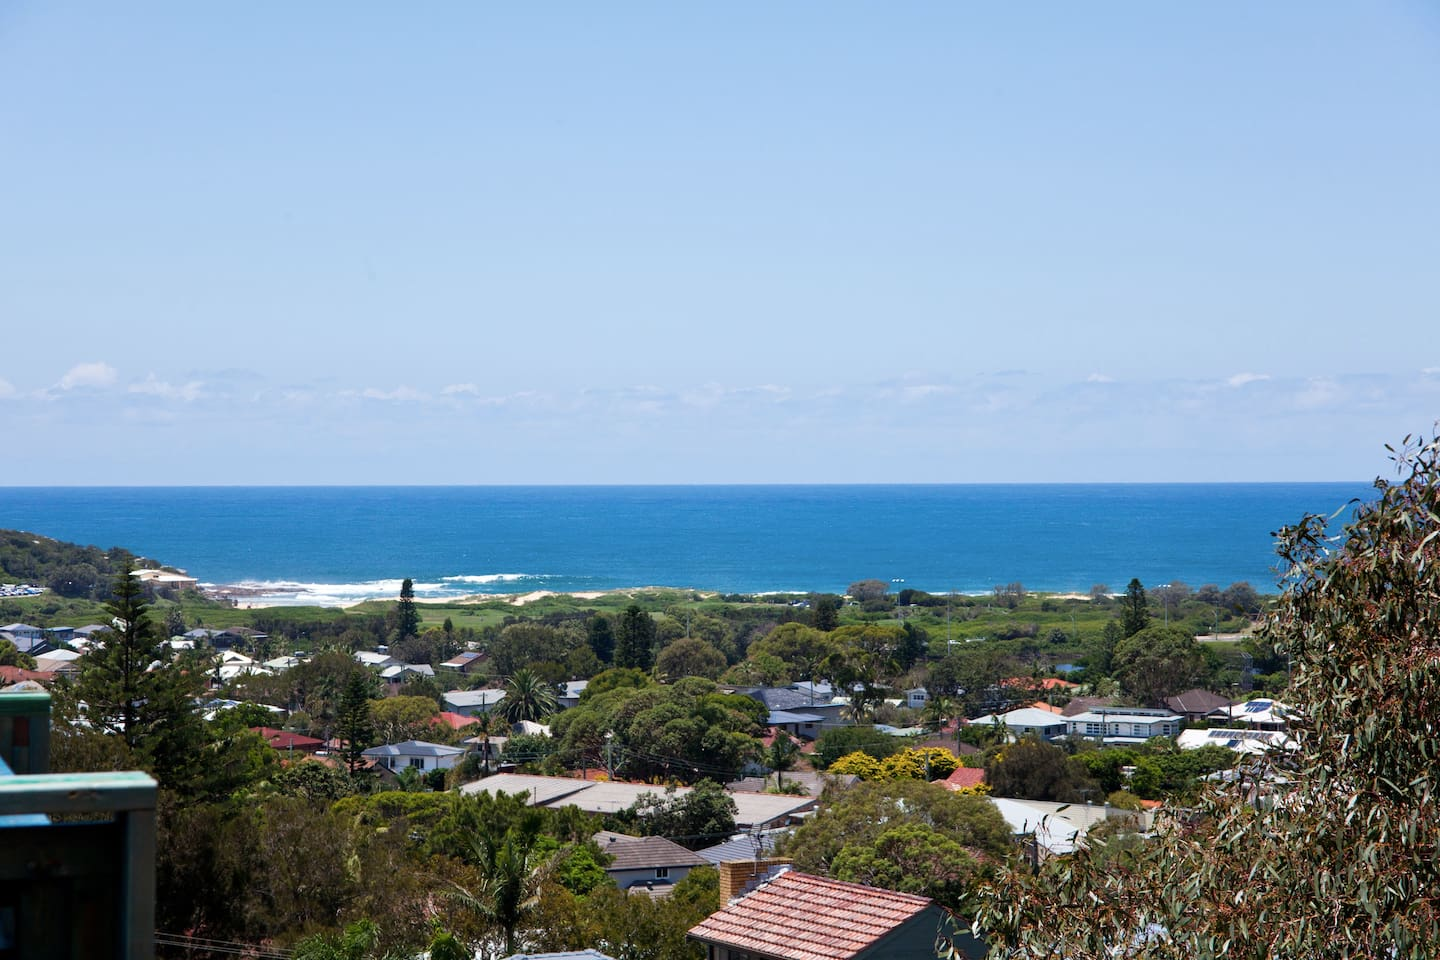 view from studio/apartment overlooking North Curl Curl